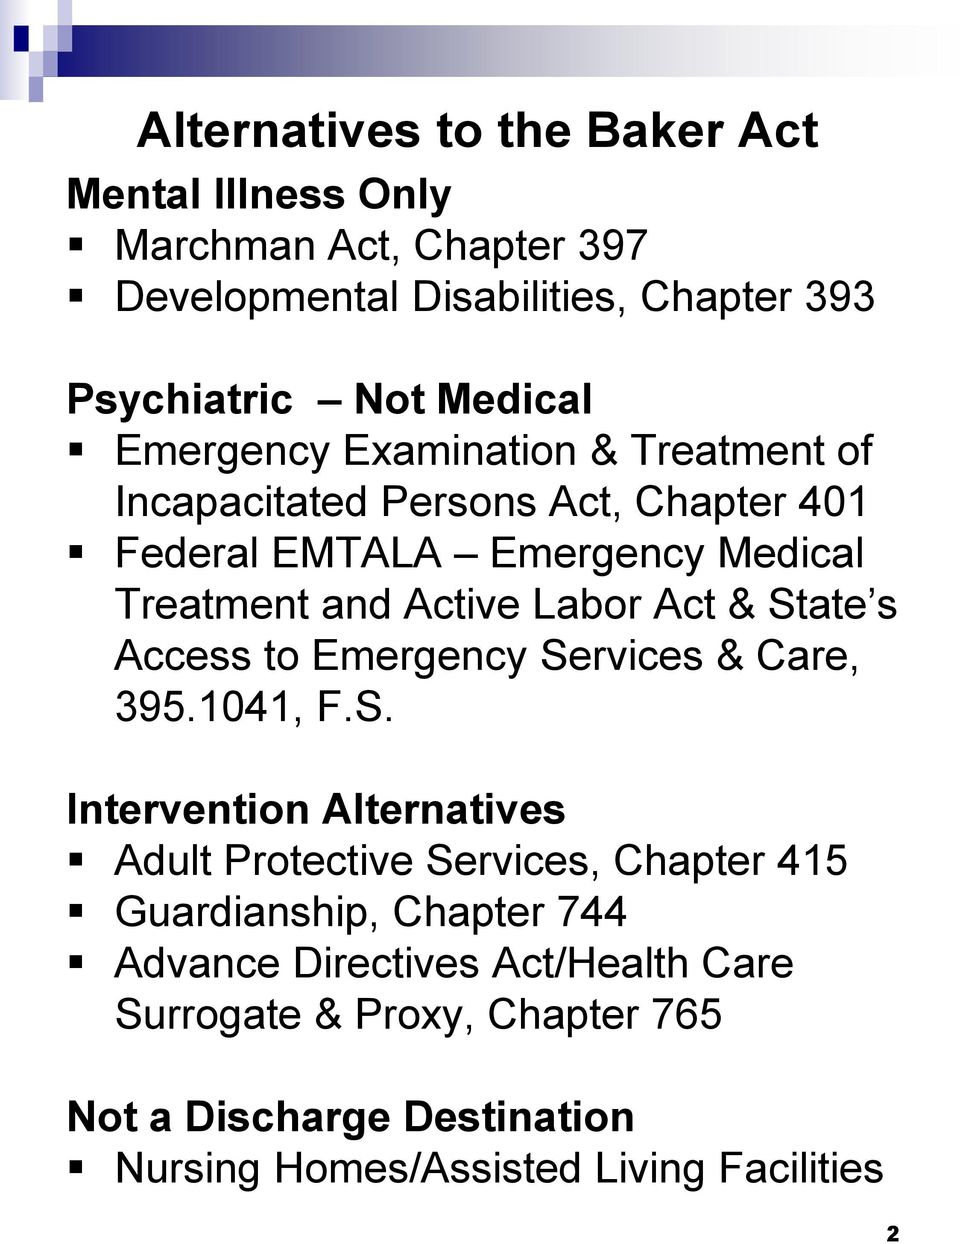 State s Access to Emergency Services & Care, 395.1041, F.S. Intervention Alternatives Adult Protective Services, Chapter 415 Guardianship,